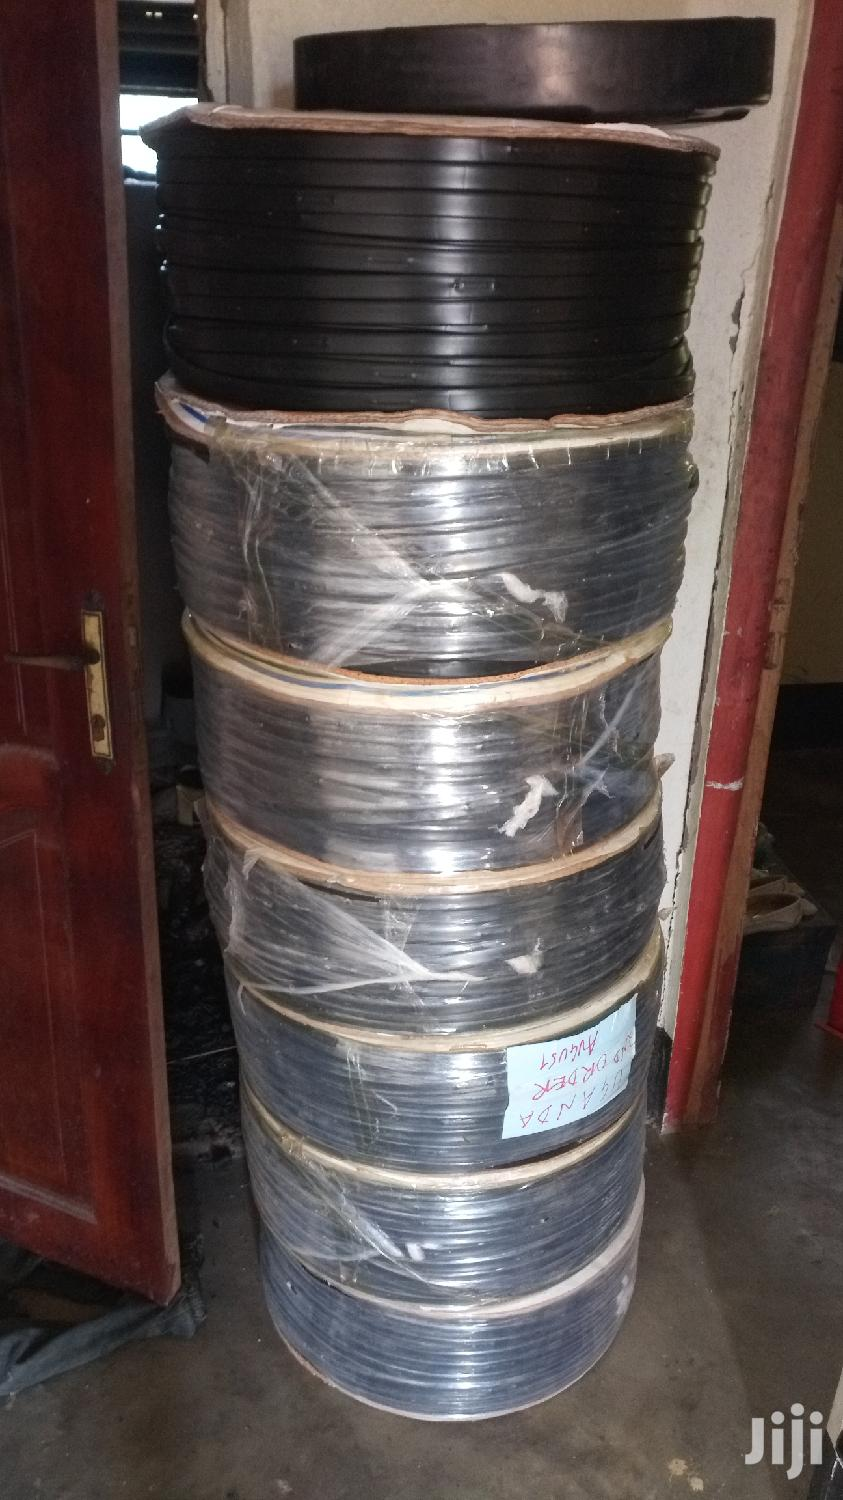 Drip Tape For Drip Irrigation Systems | Farm Machinery & Equipment for sale in Kampala, Central Region, Uganda